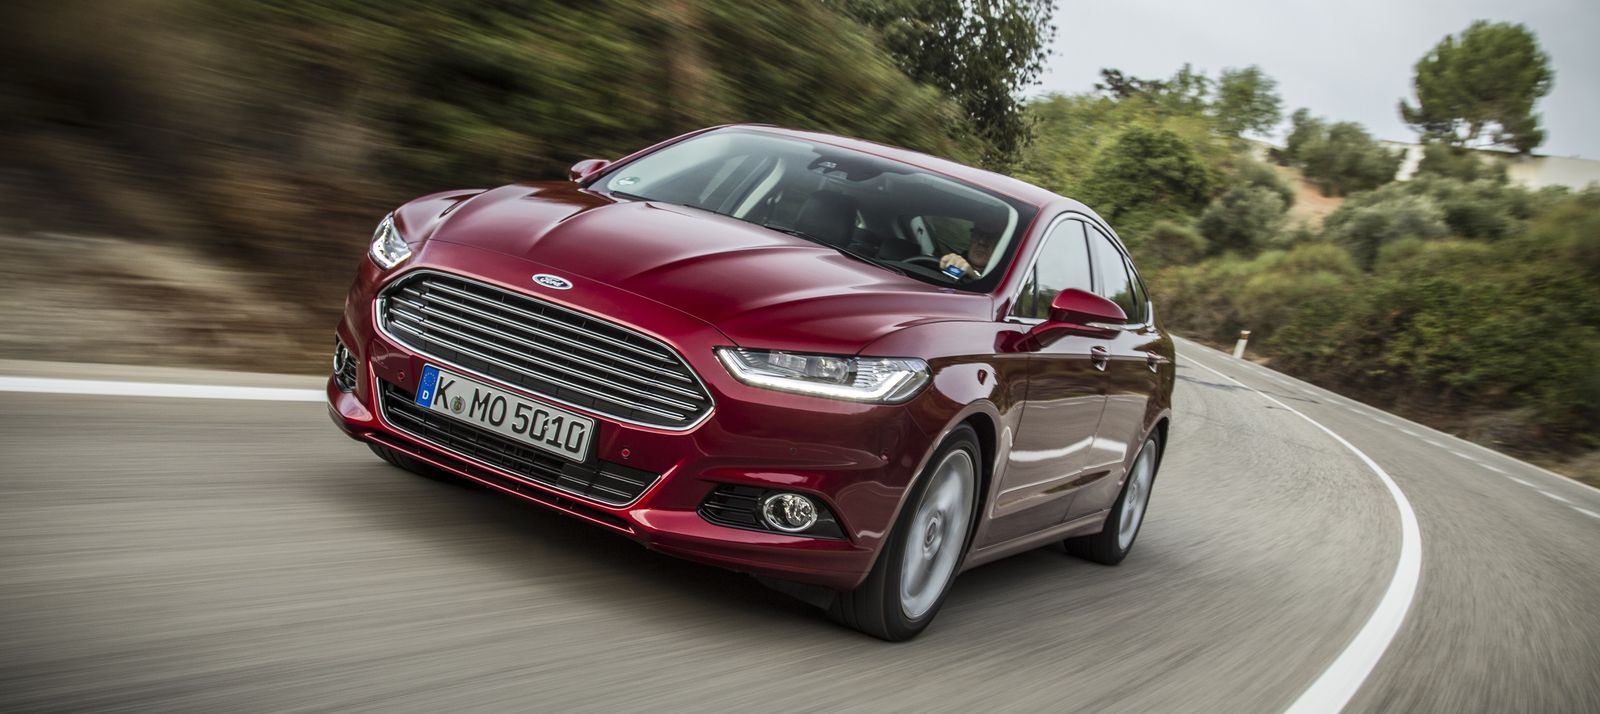 The 10 Best Large Family Cars